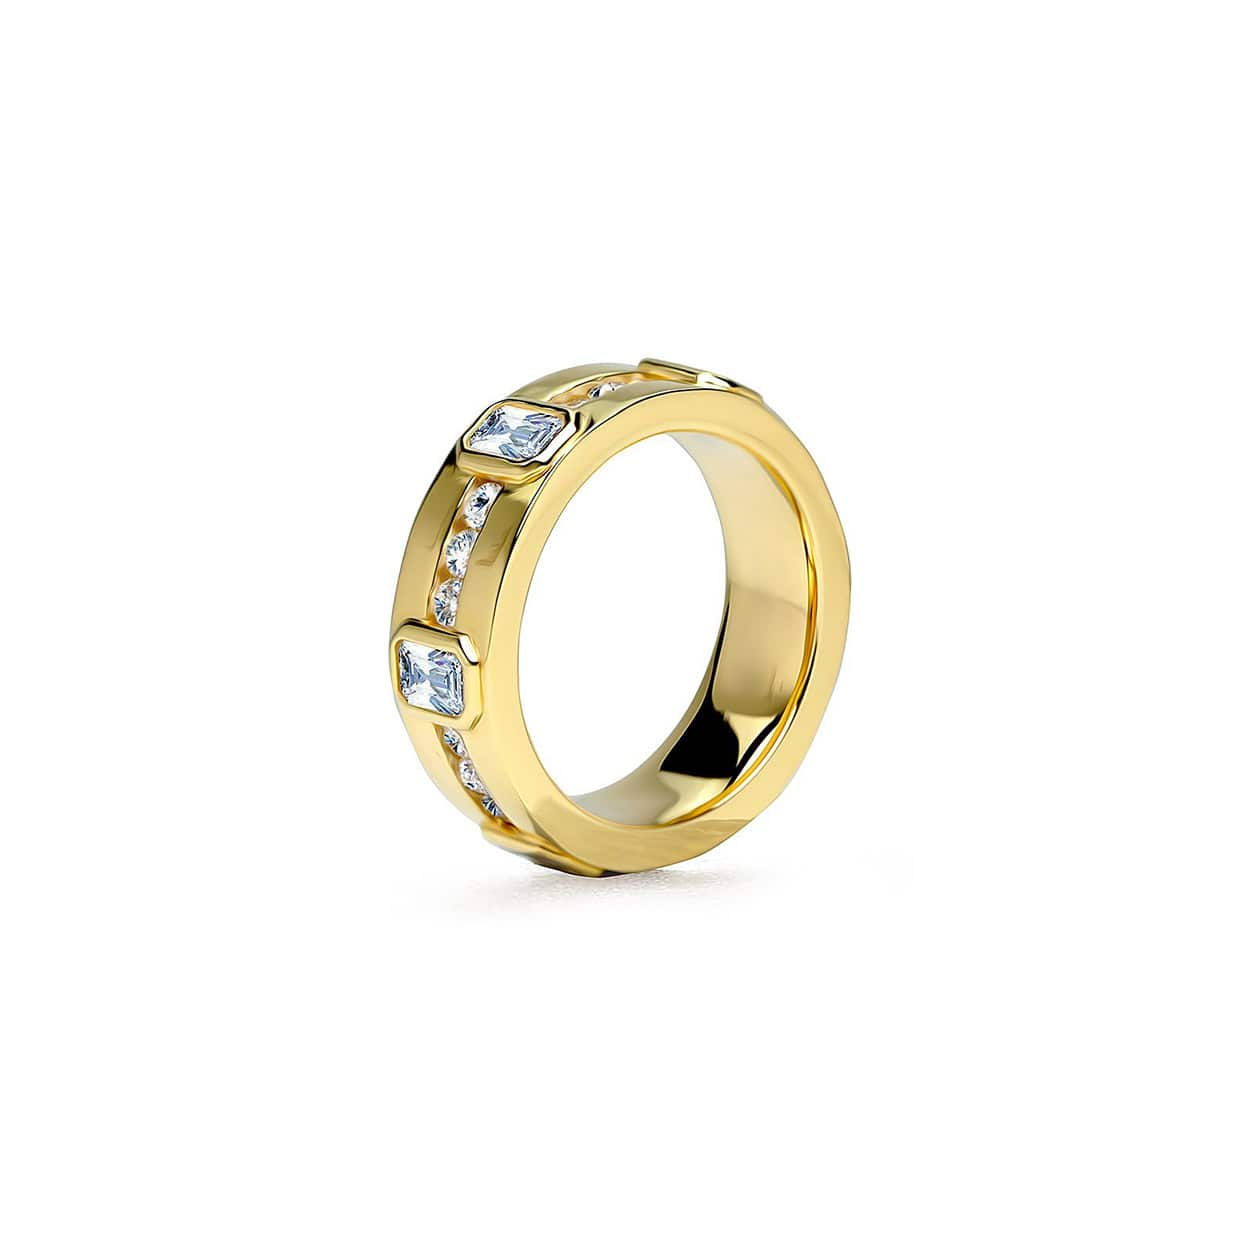 Abelstedt A Gold Wide Ring - Abelstedt